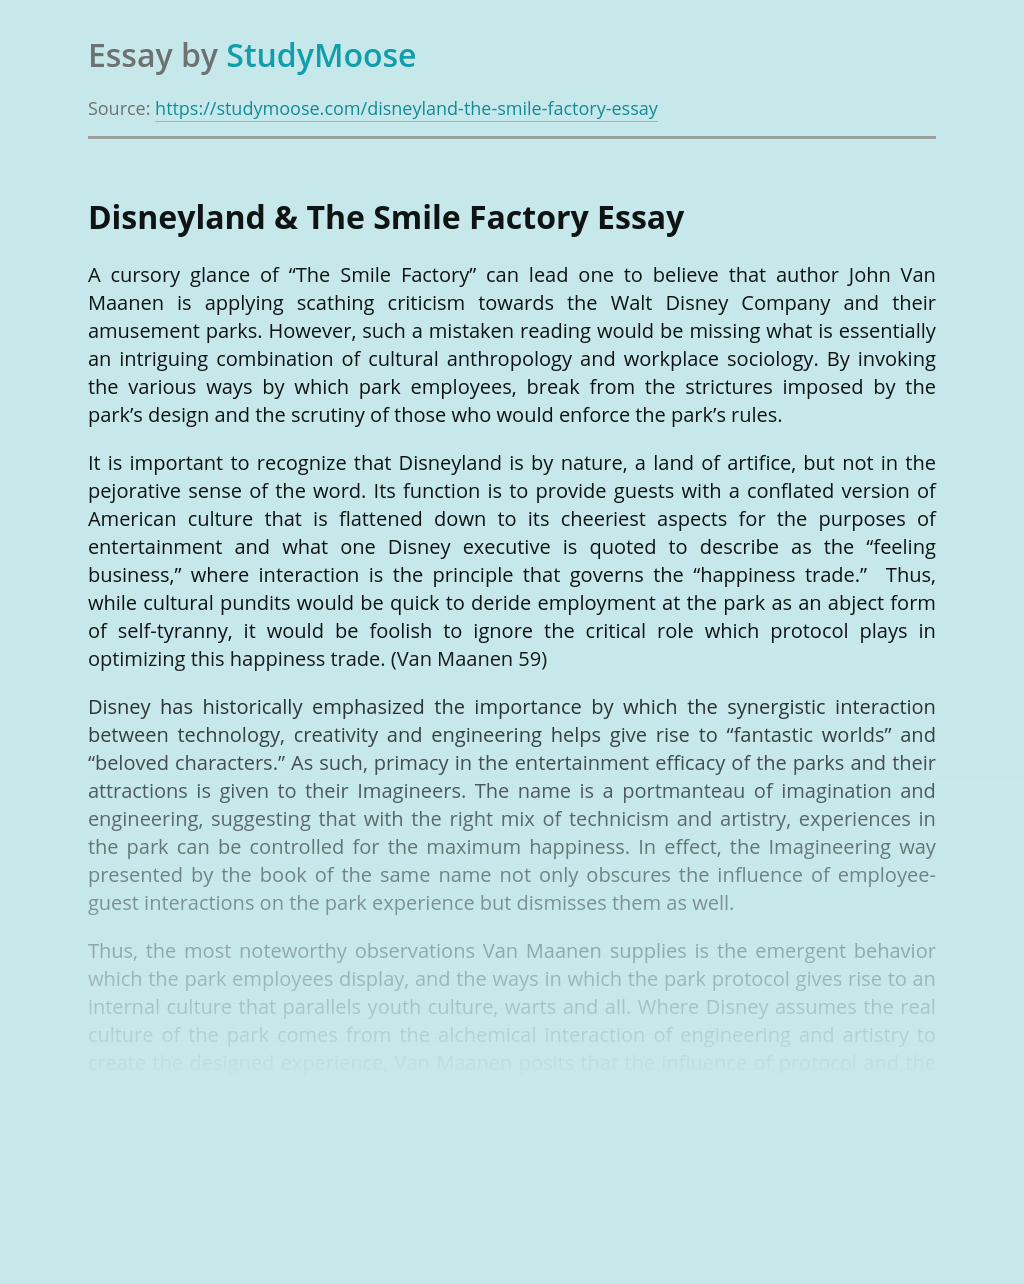 The Smile Factory: Work At Disneyland by John Van Maanen